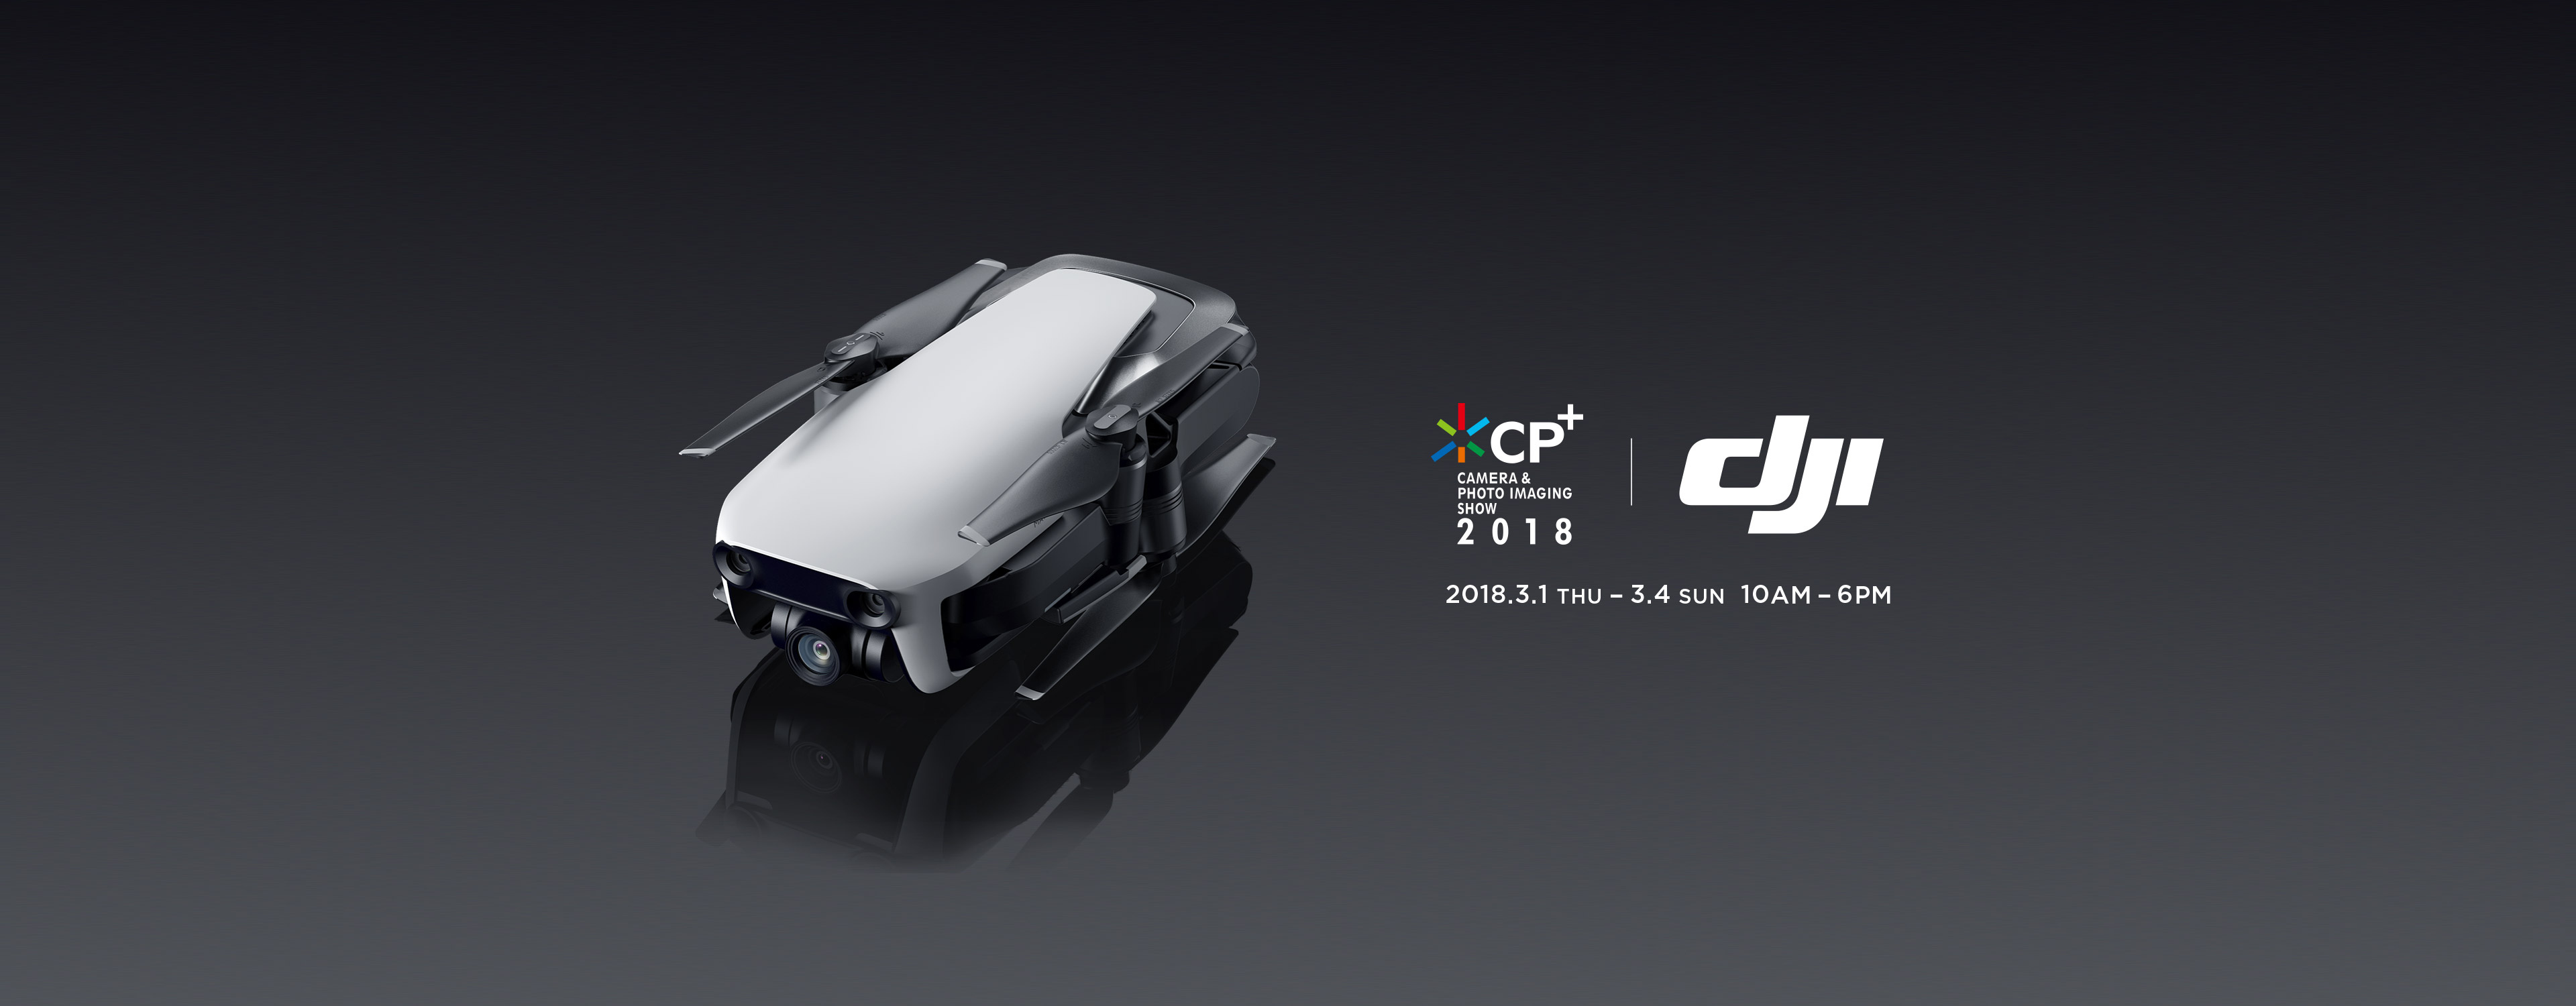 DJI CP+; 2018.3.1(THU) - 3.4(SUN) 10AM-5PM 会場:パシフィコ横浜